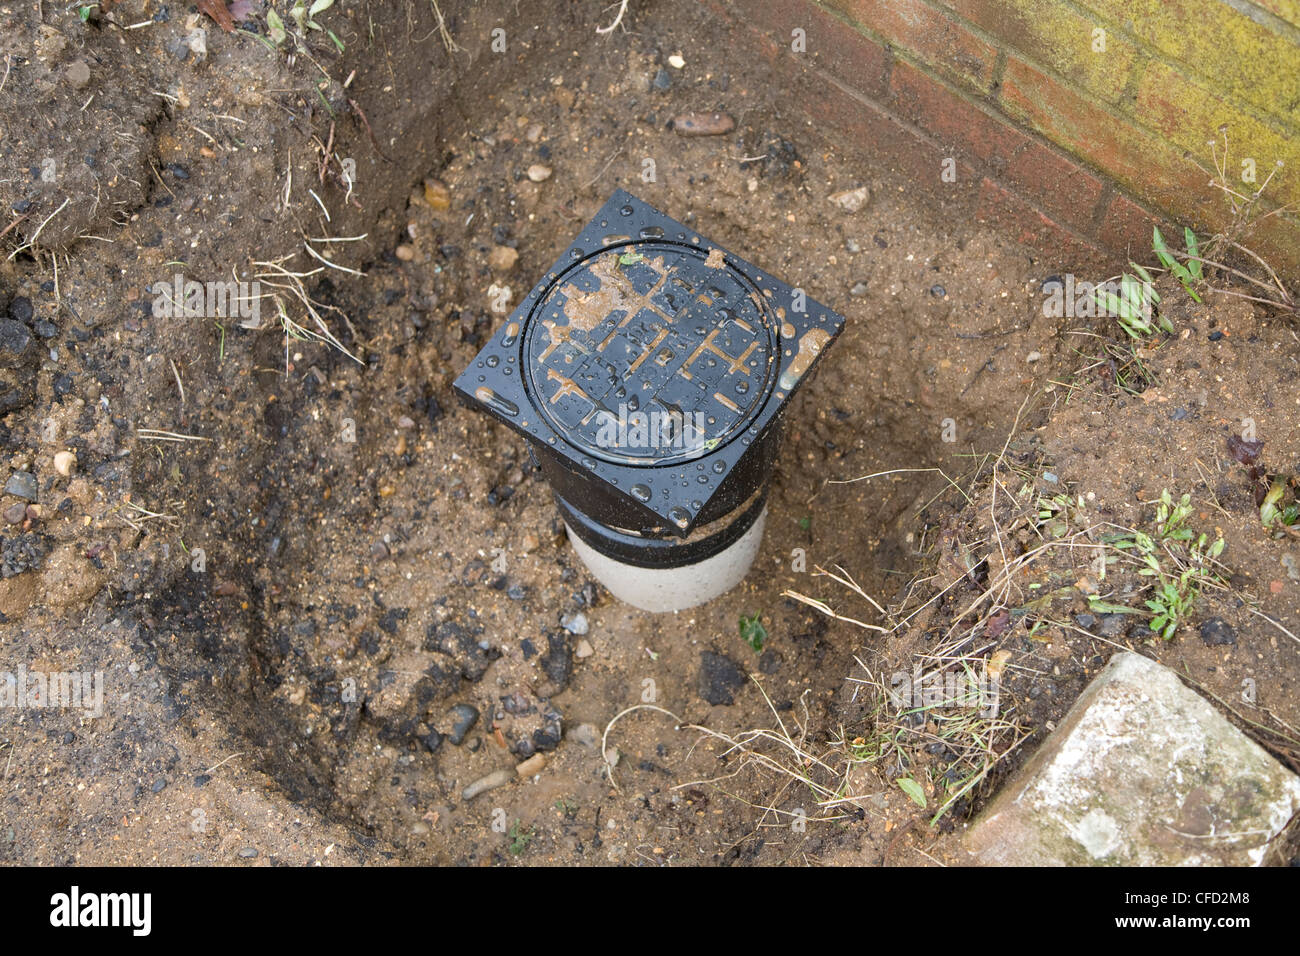 Domestic water main sunk into the ground - Stock Image